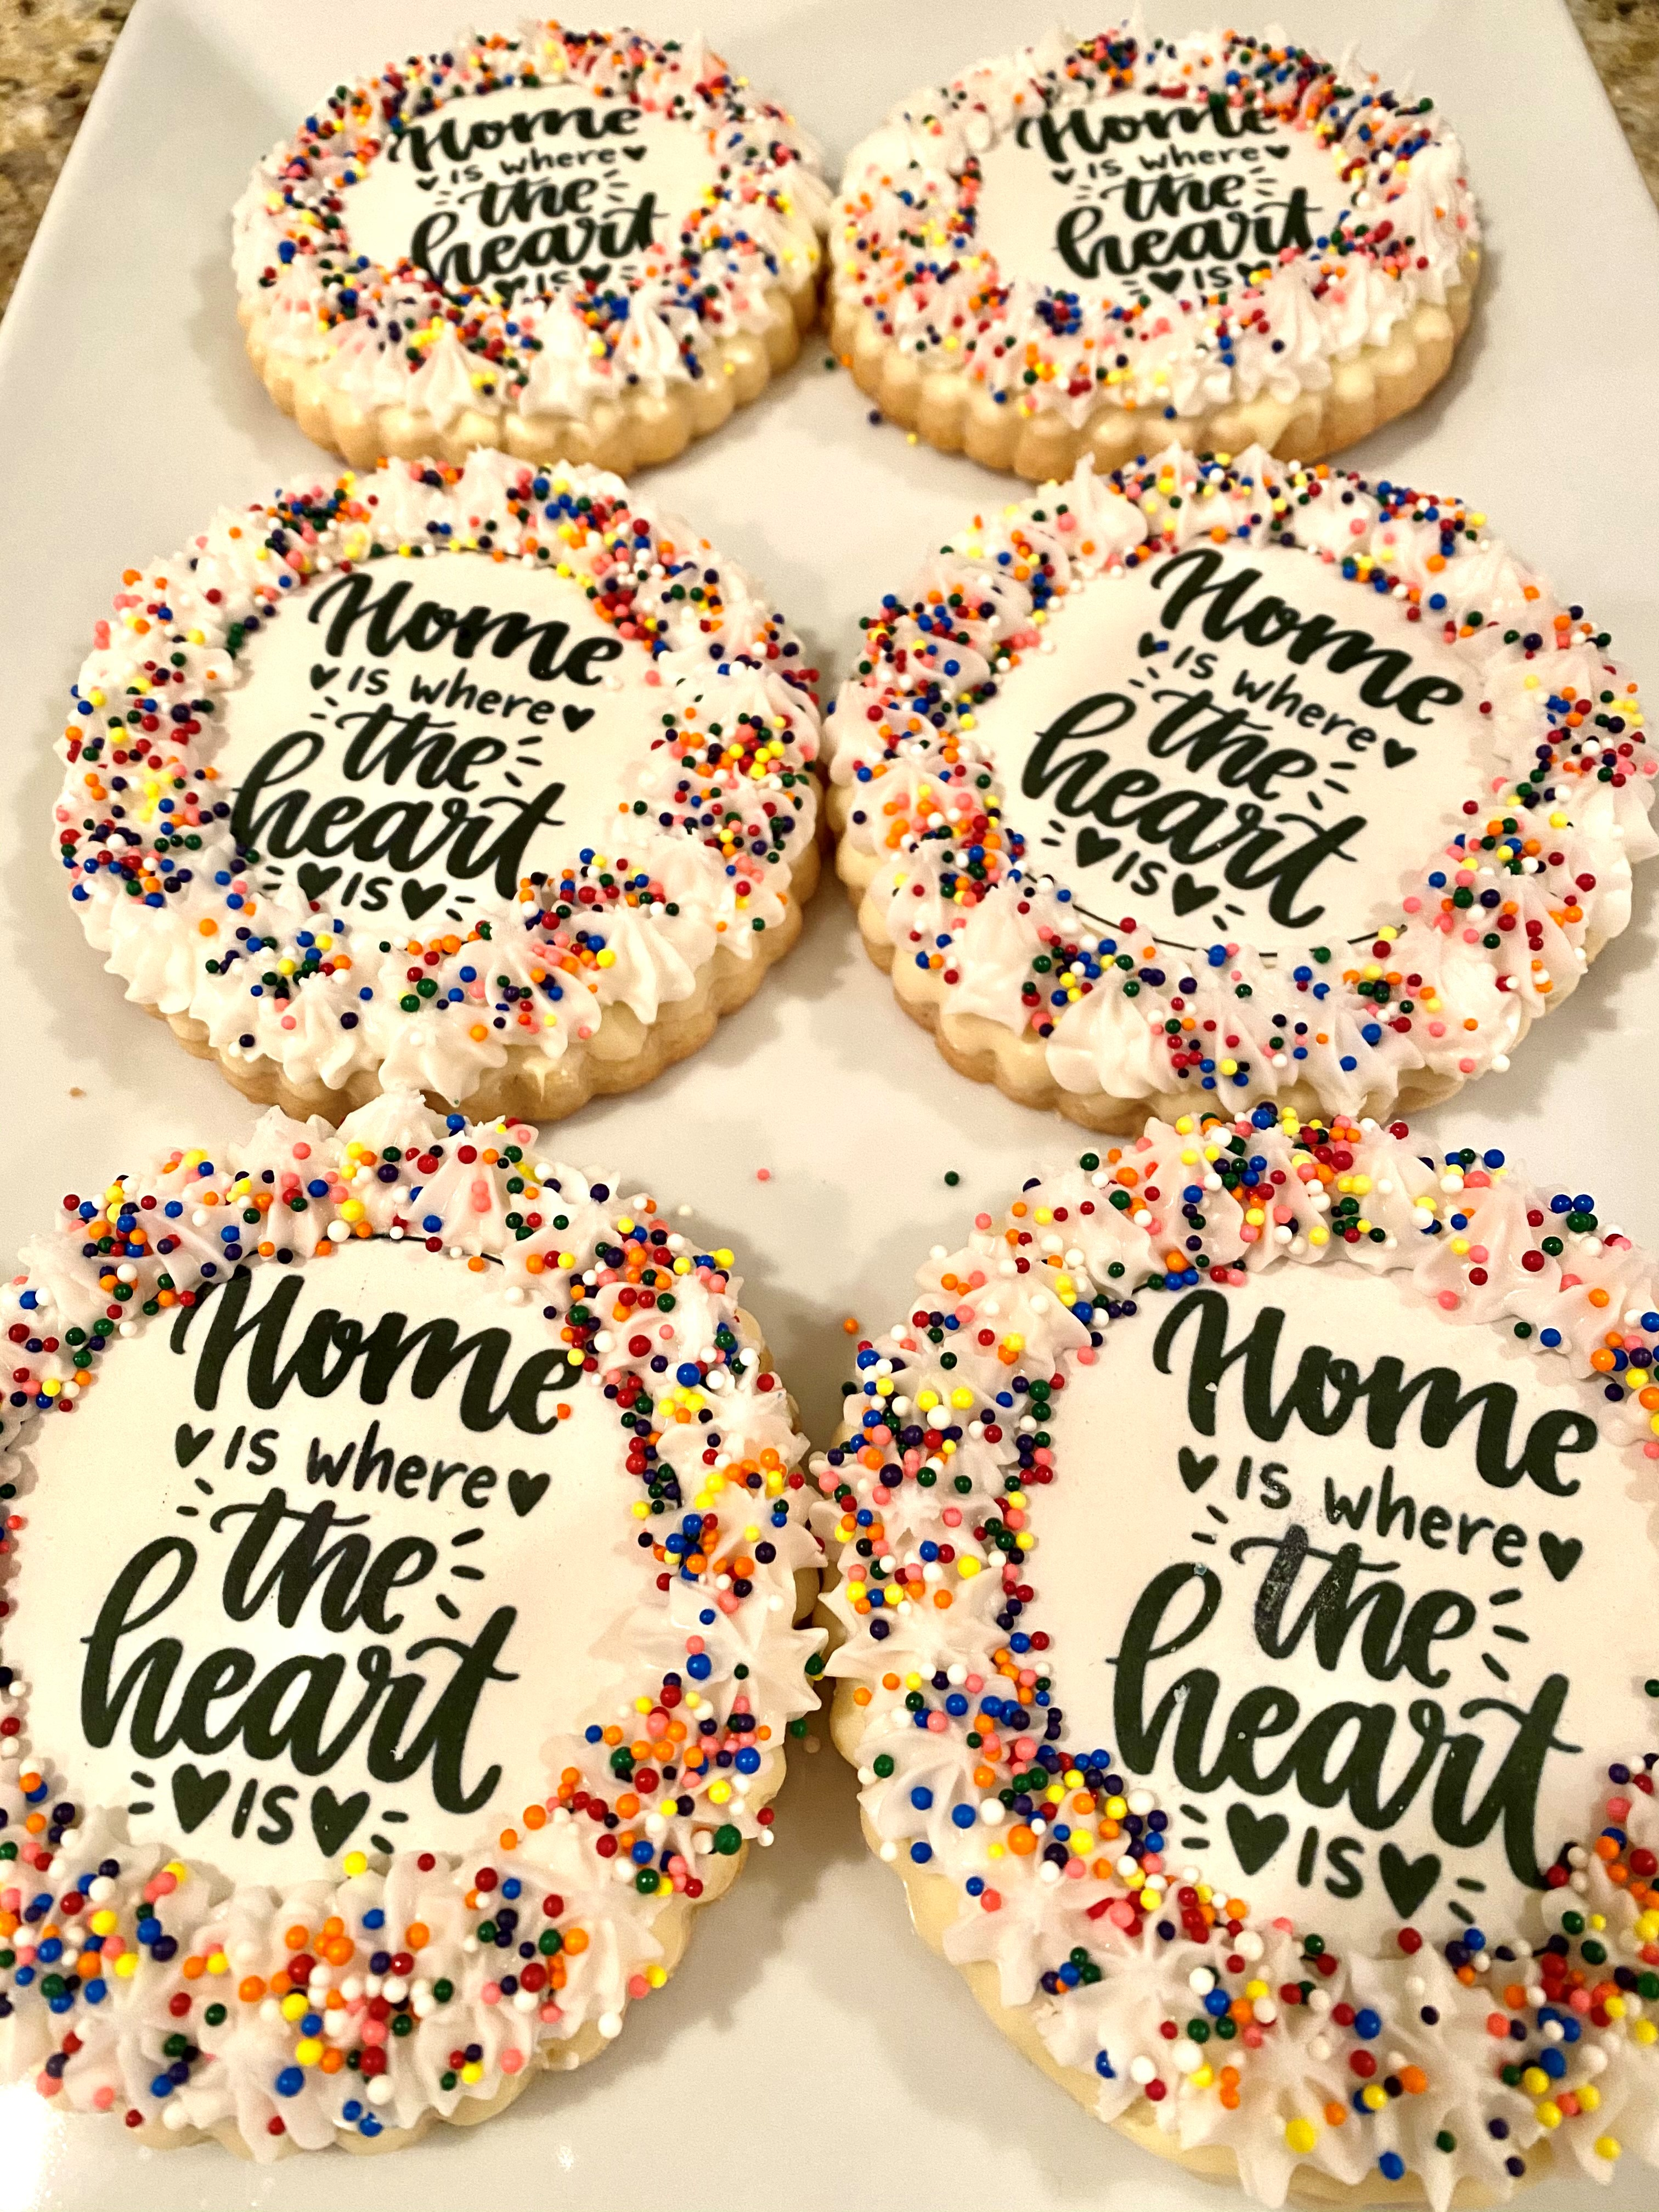 home-sweet-home-cookies.jpg